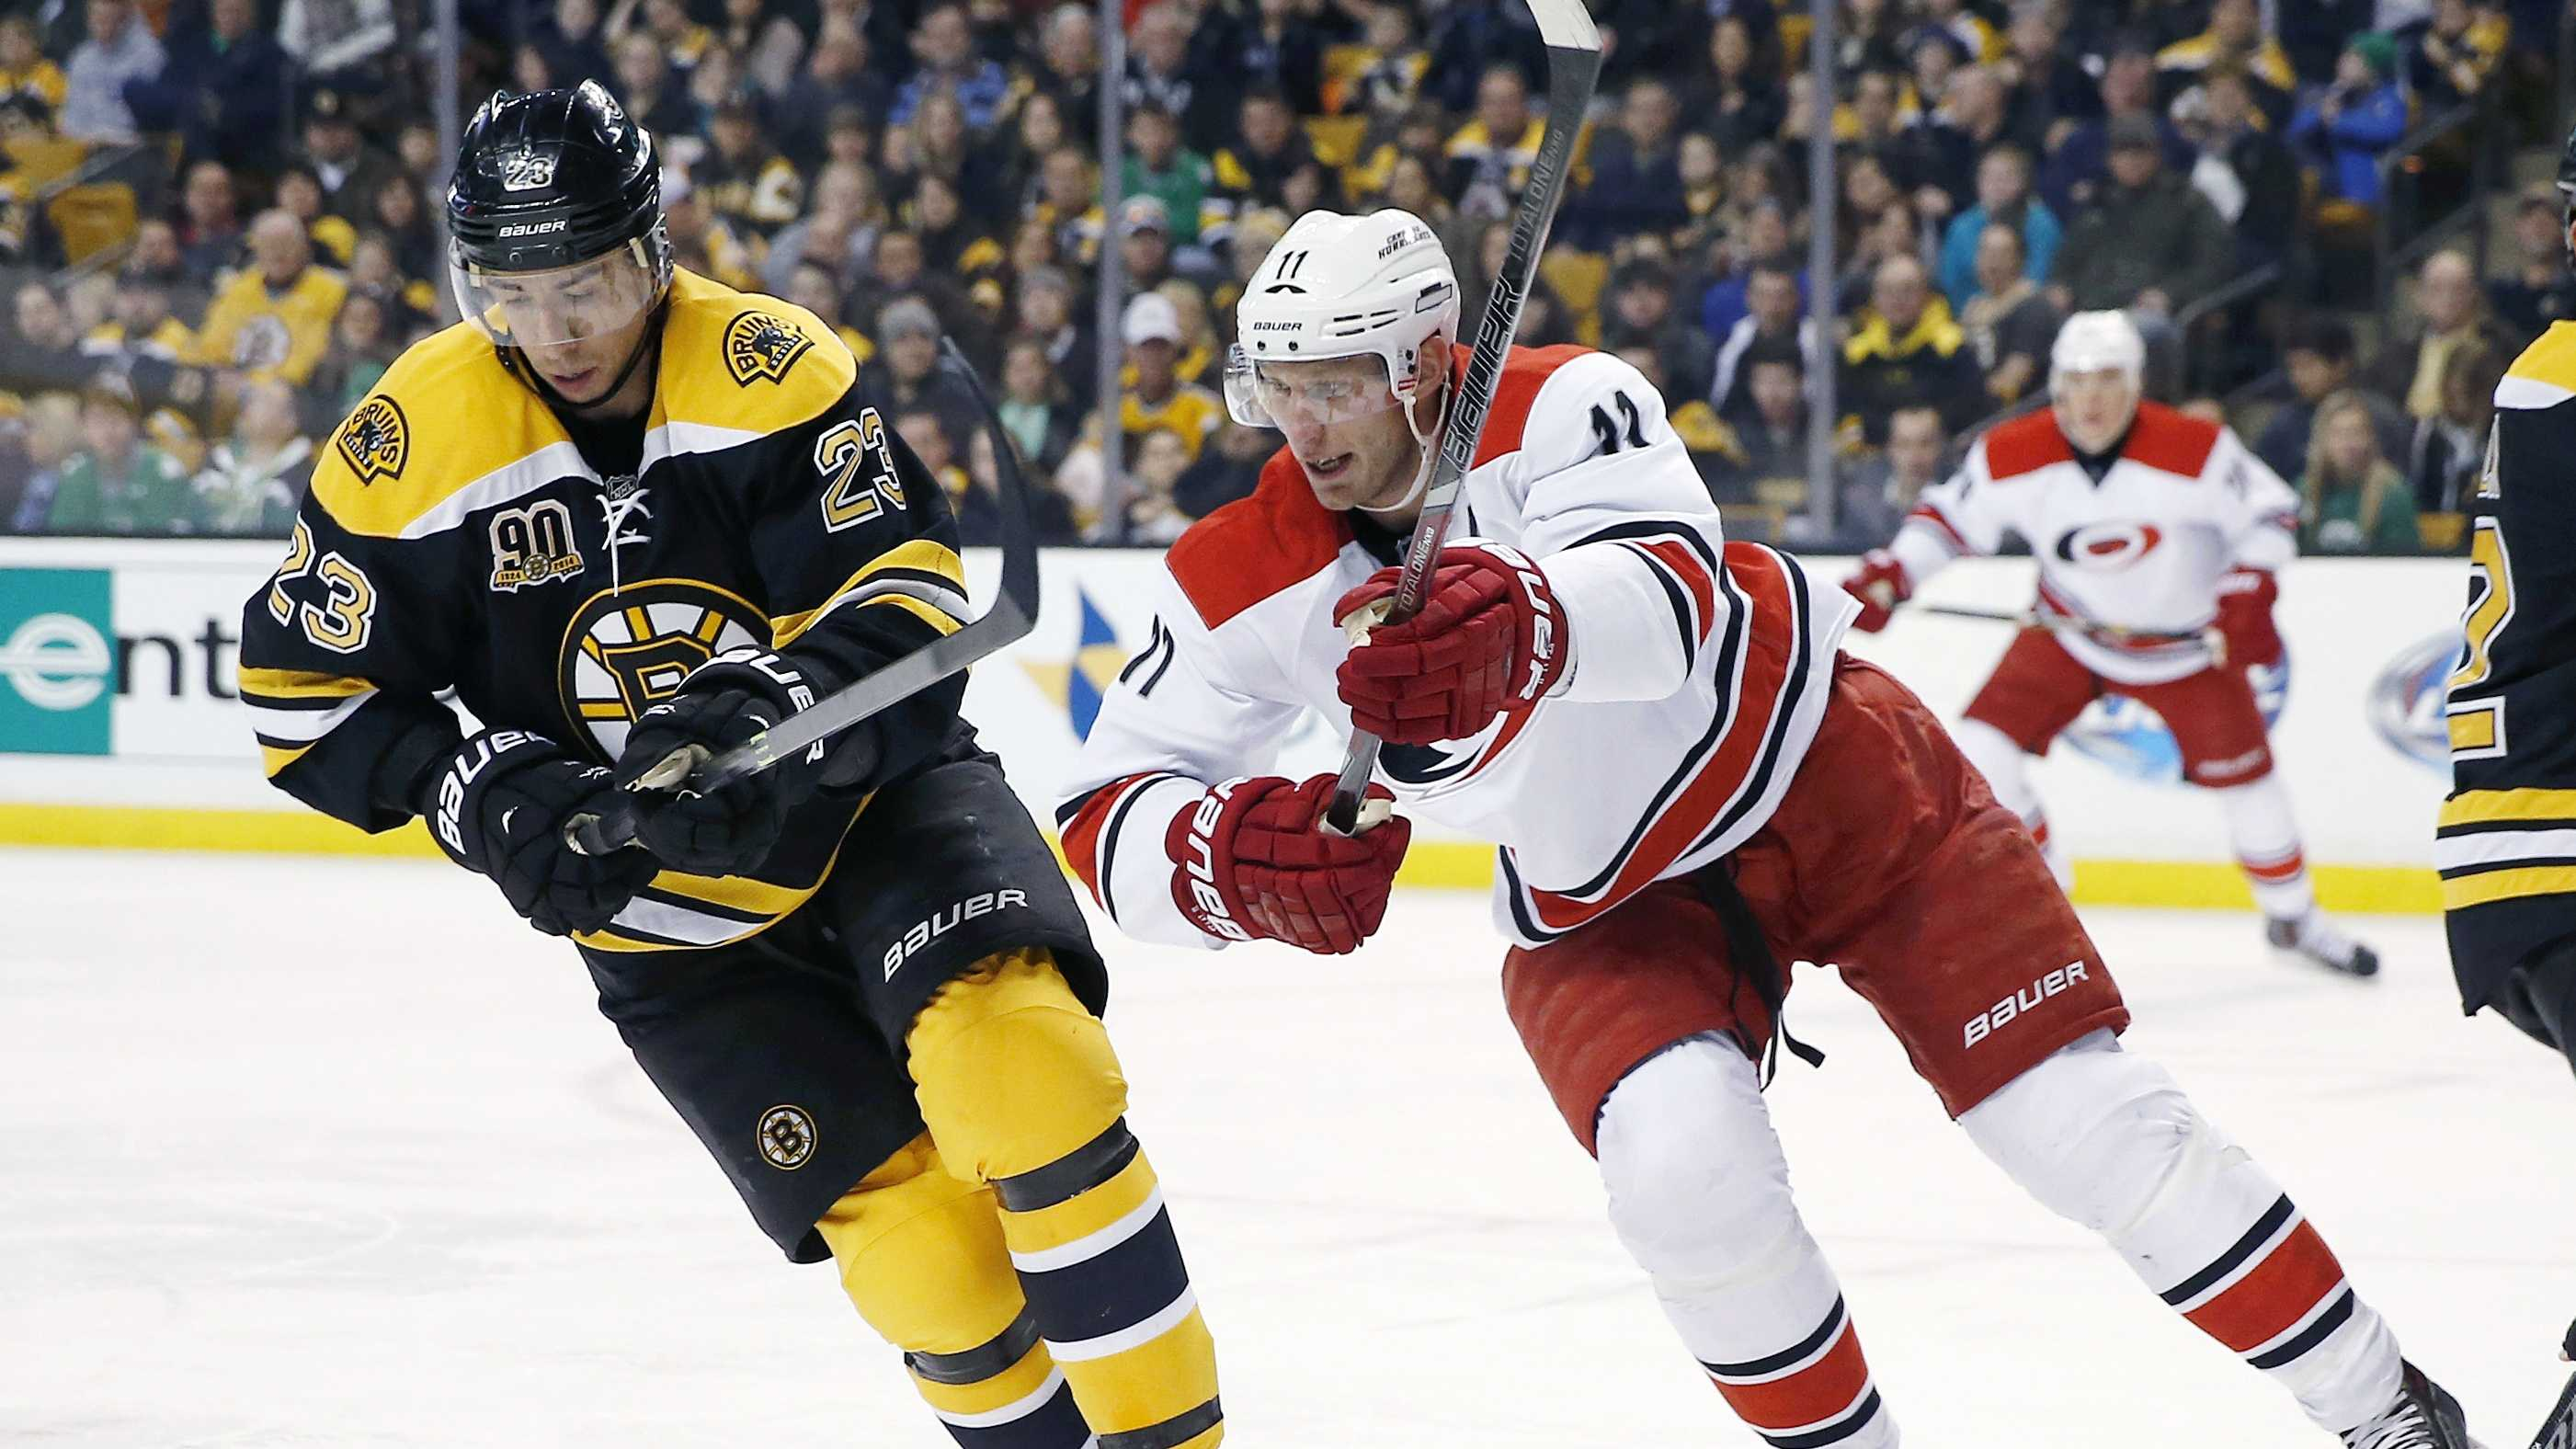 Boston Bruins' Chris Kelly (23) and Carolina Hurricanes' Jordan Staal (11) battle for the puck in the first period of an NHL hockey game in Boston, Saturday, March 15, 2014.